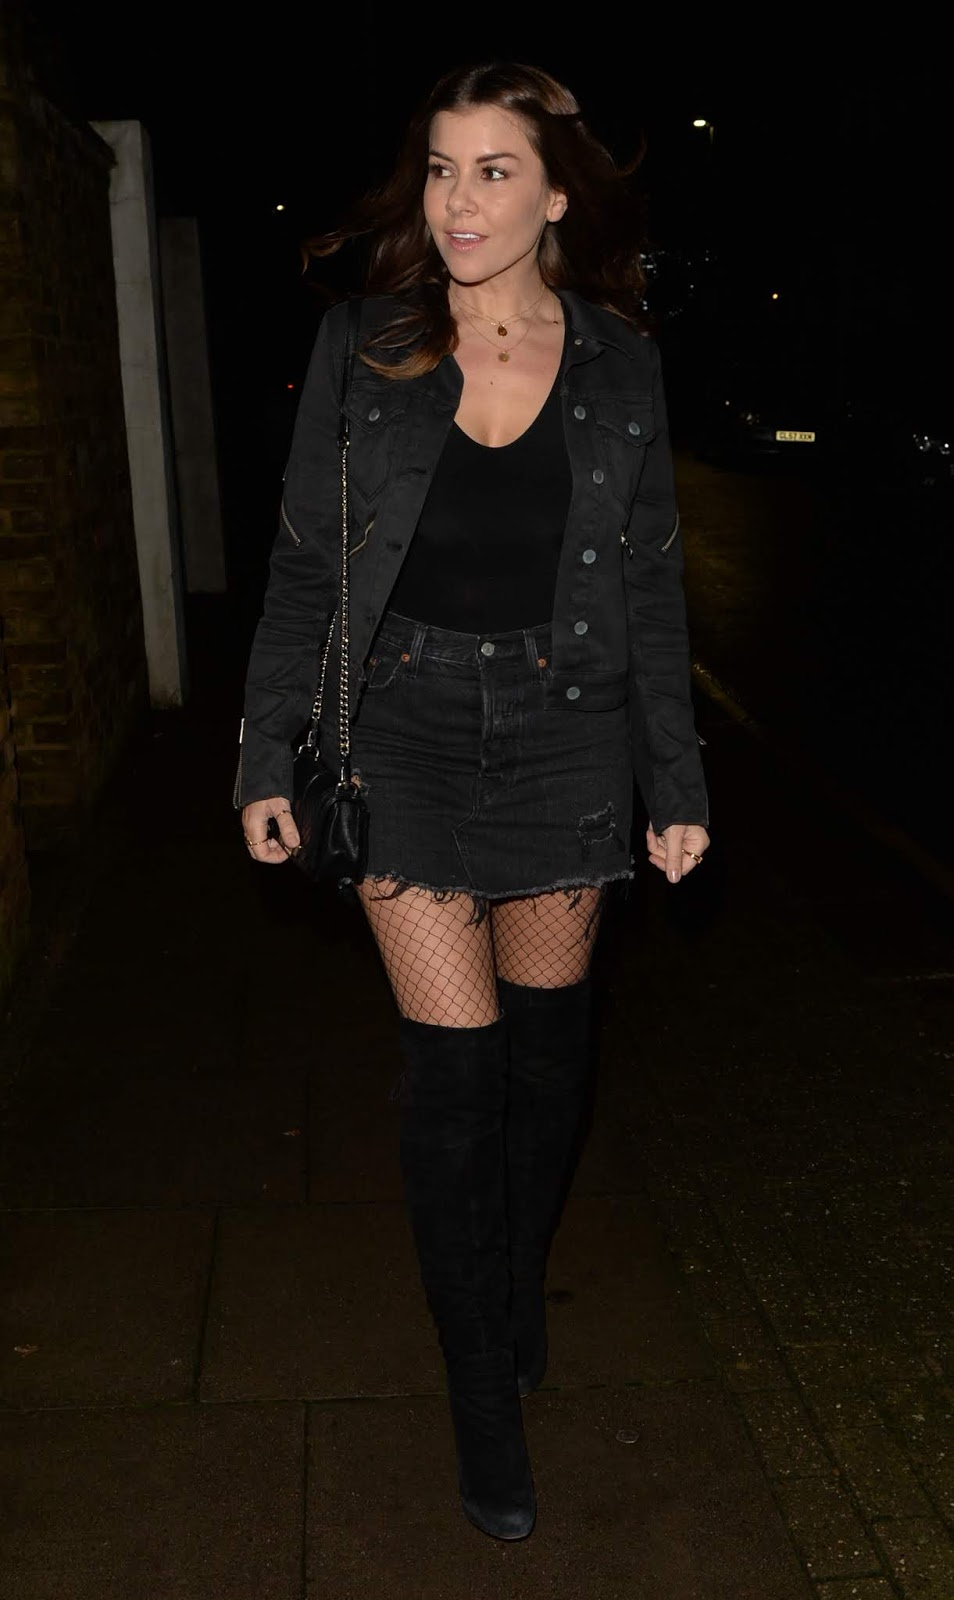 Imogen Thomas seen at Soho House - 01/26/2019